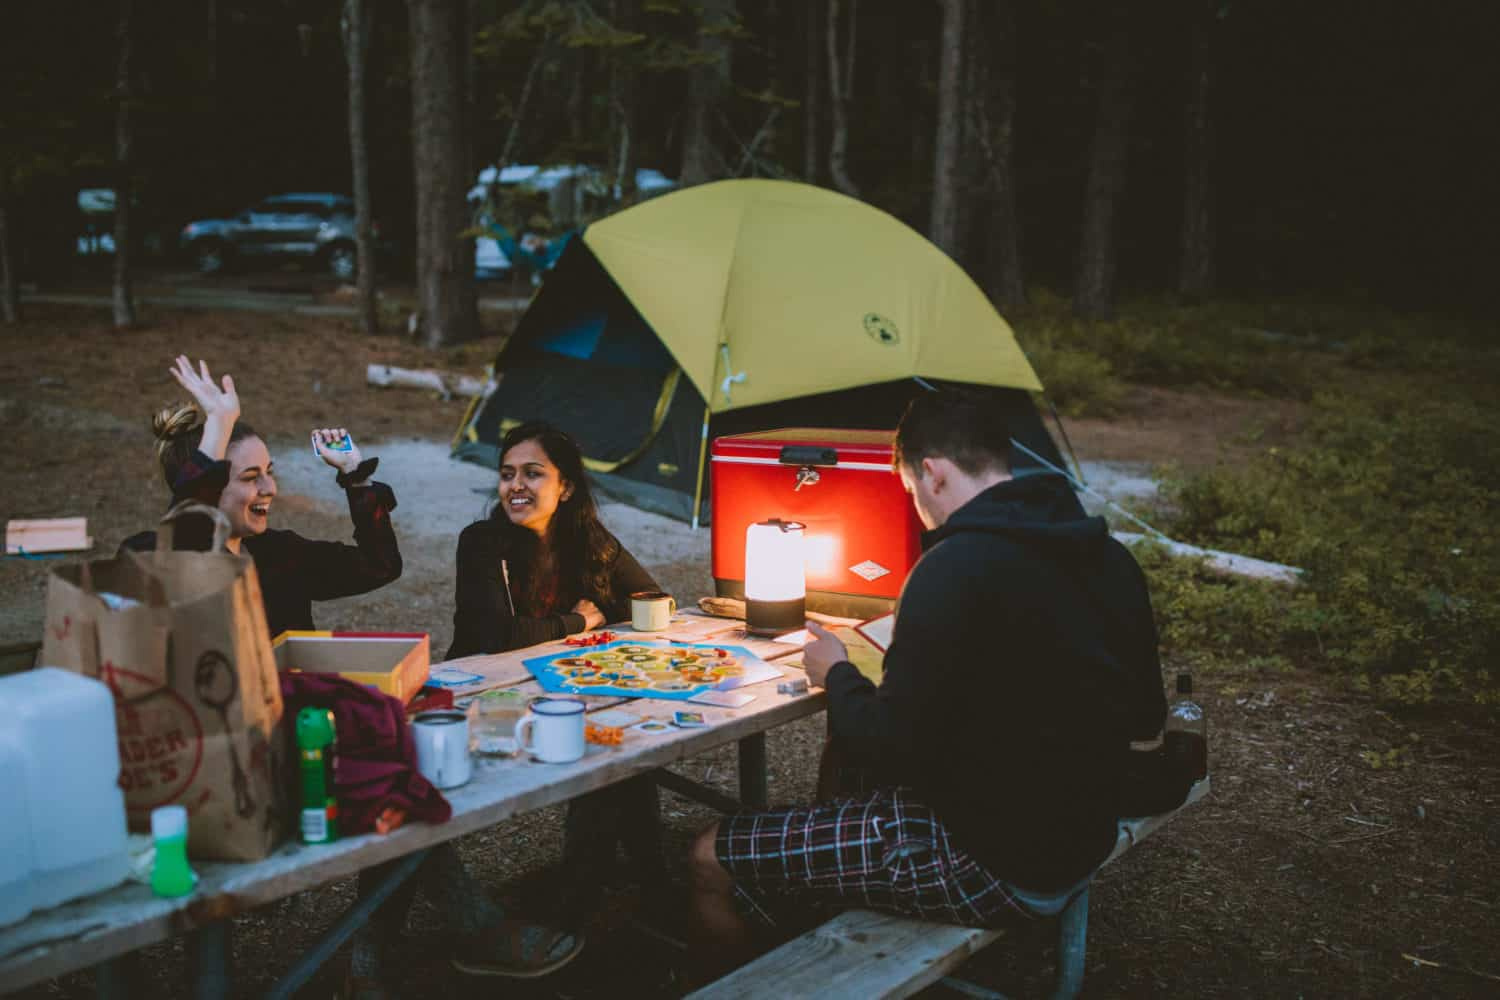 Playing games while camping